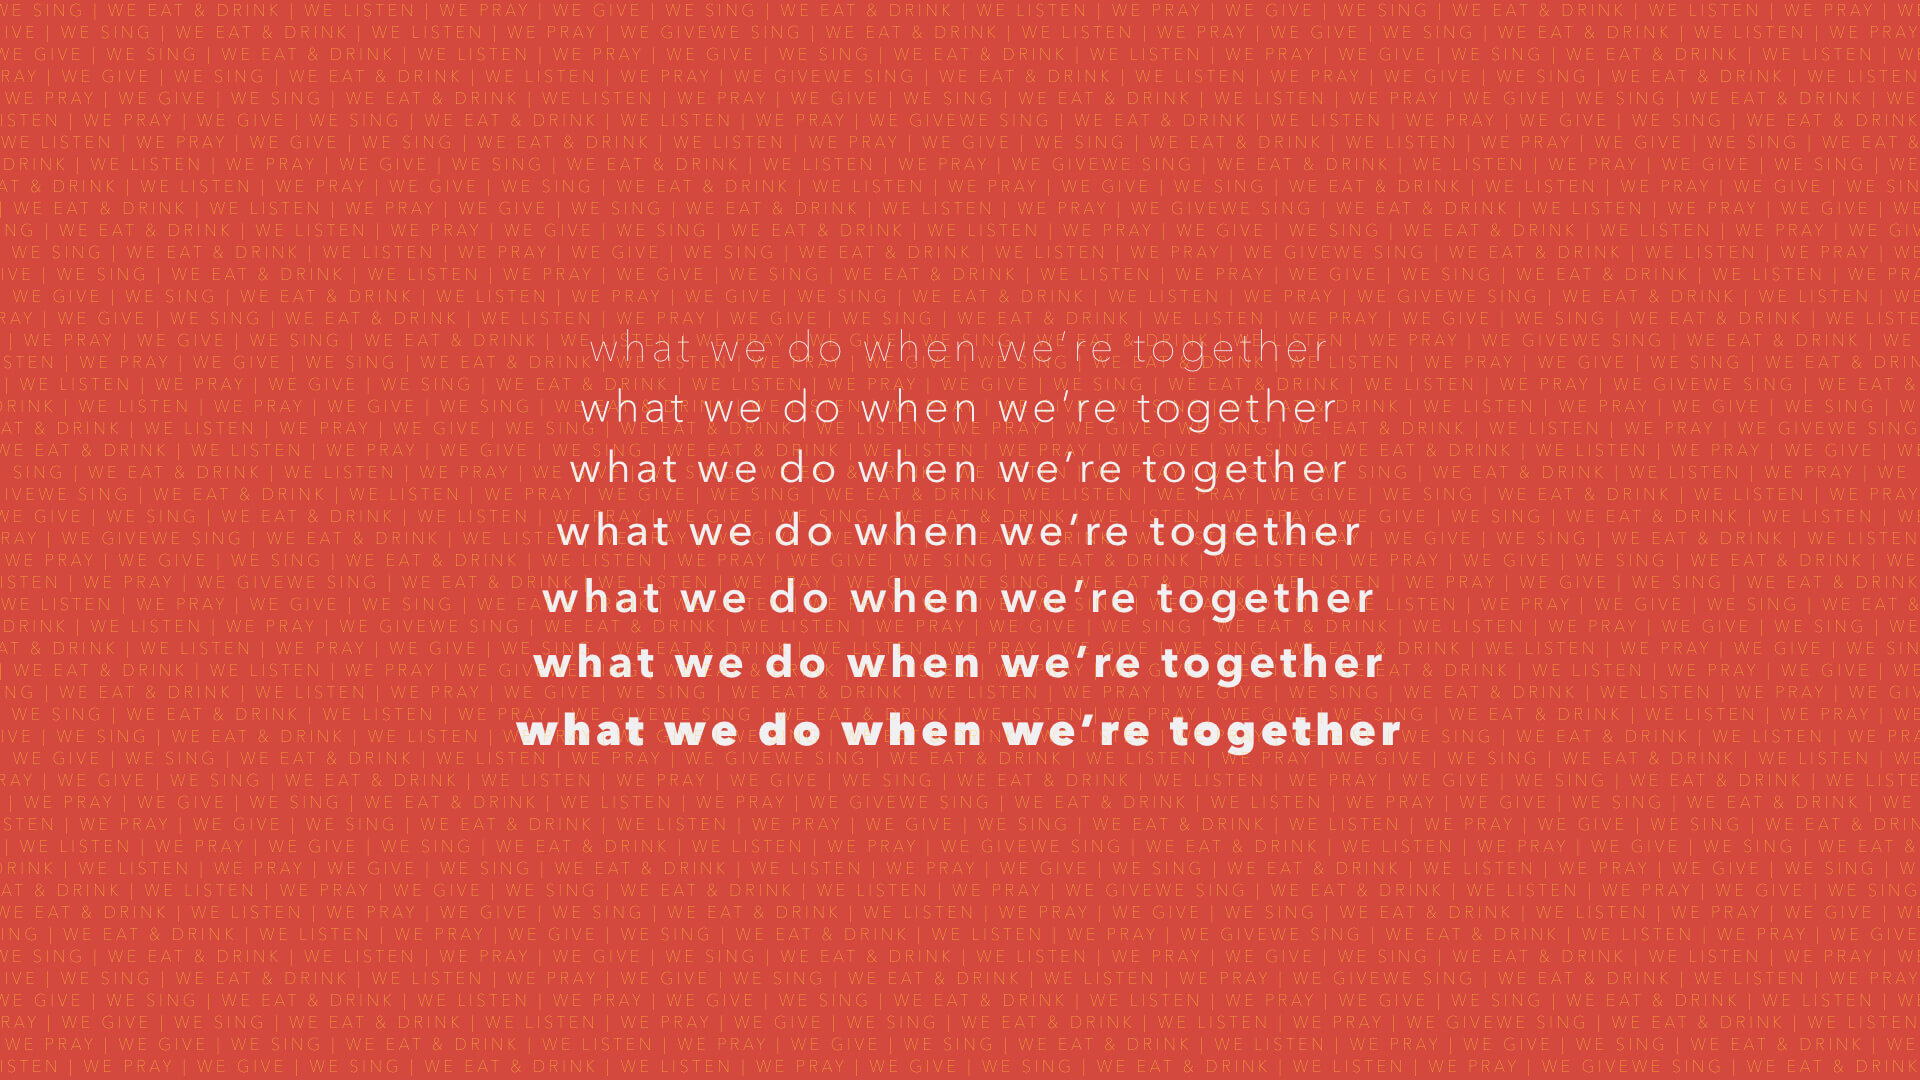 What We Do When We're Together bulletin cover.001 (1).jpeg